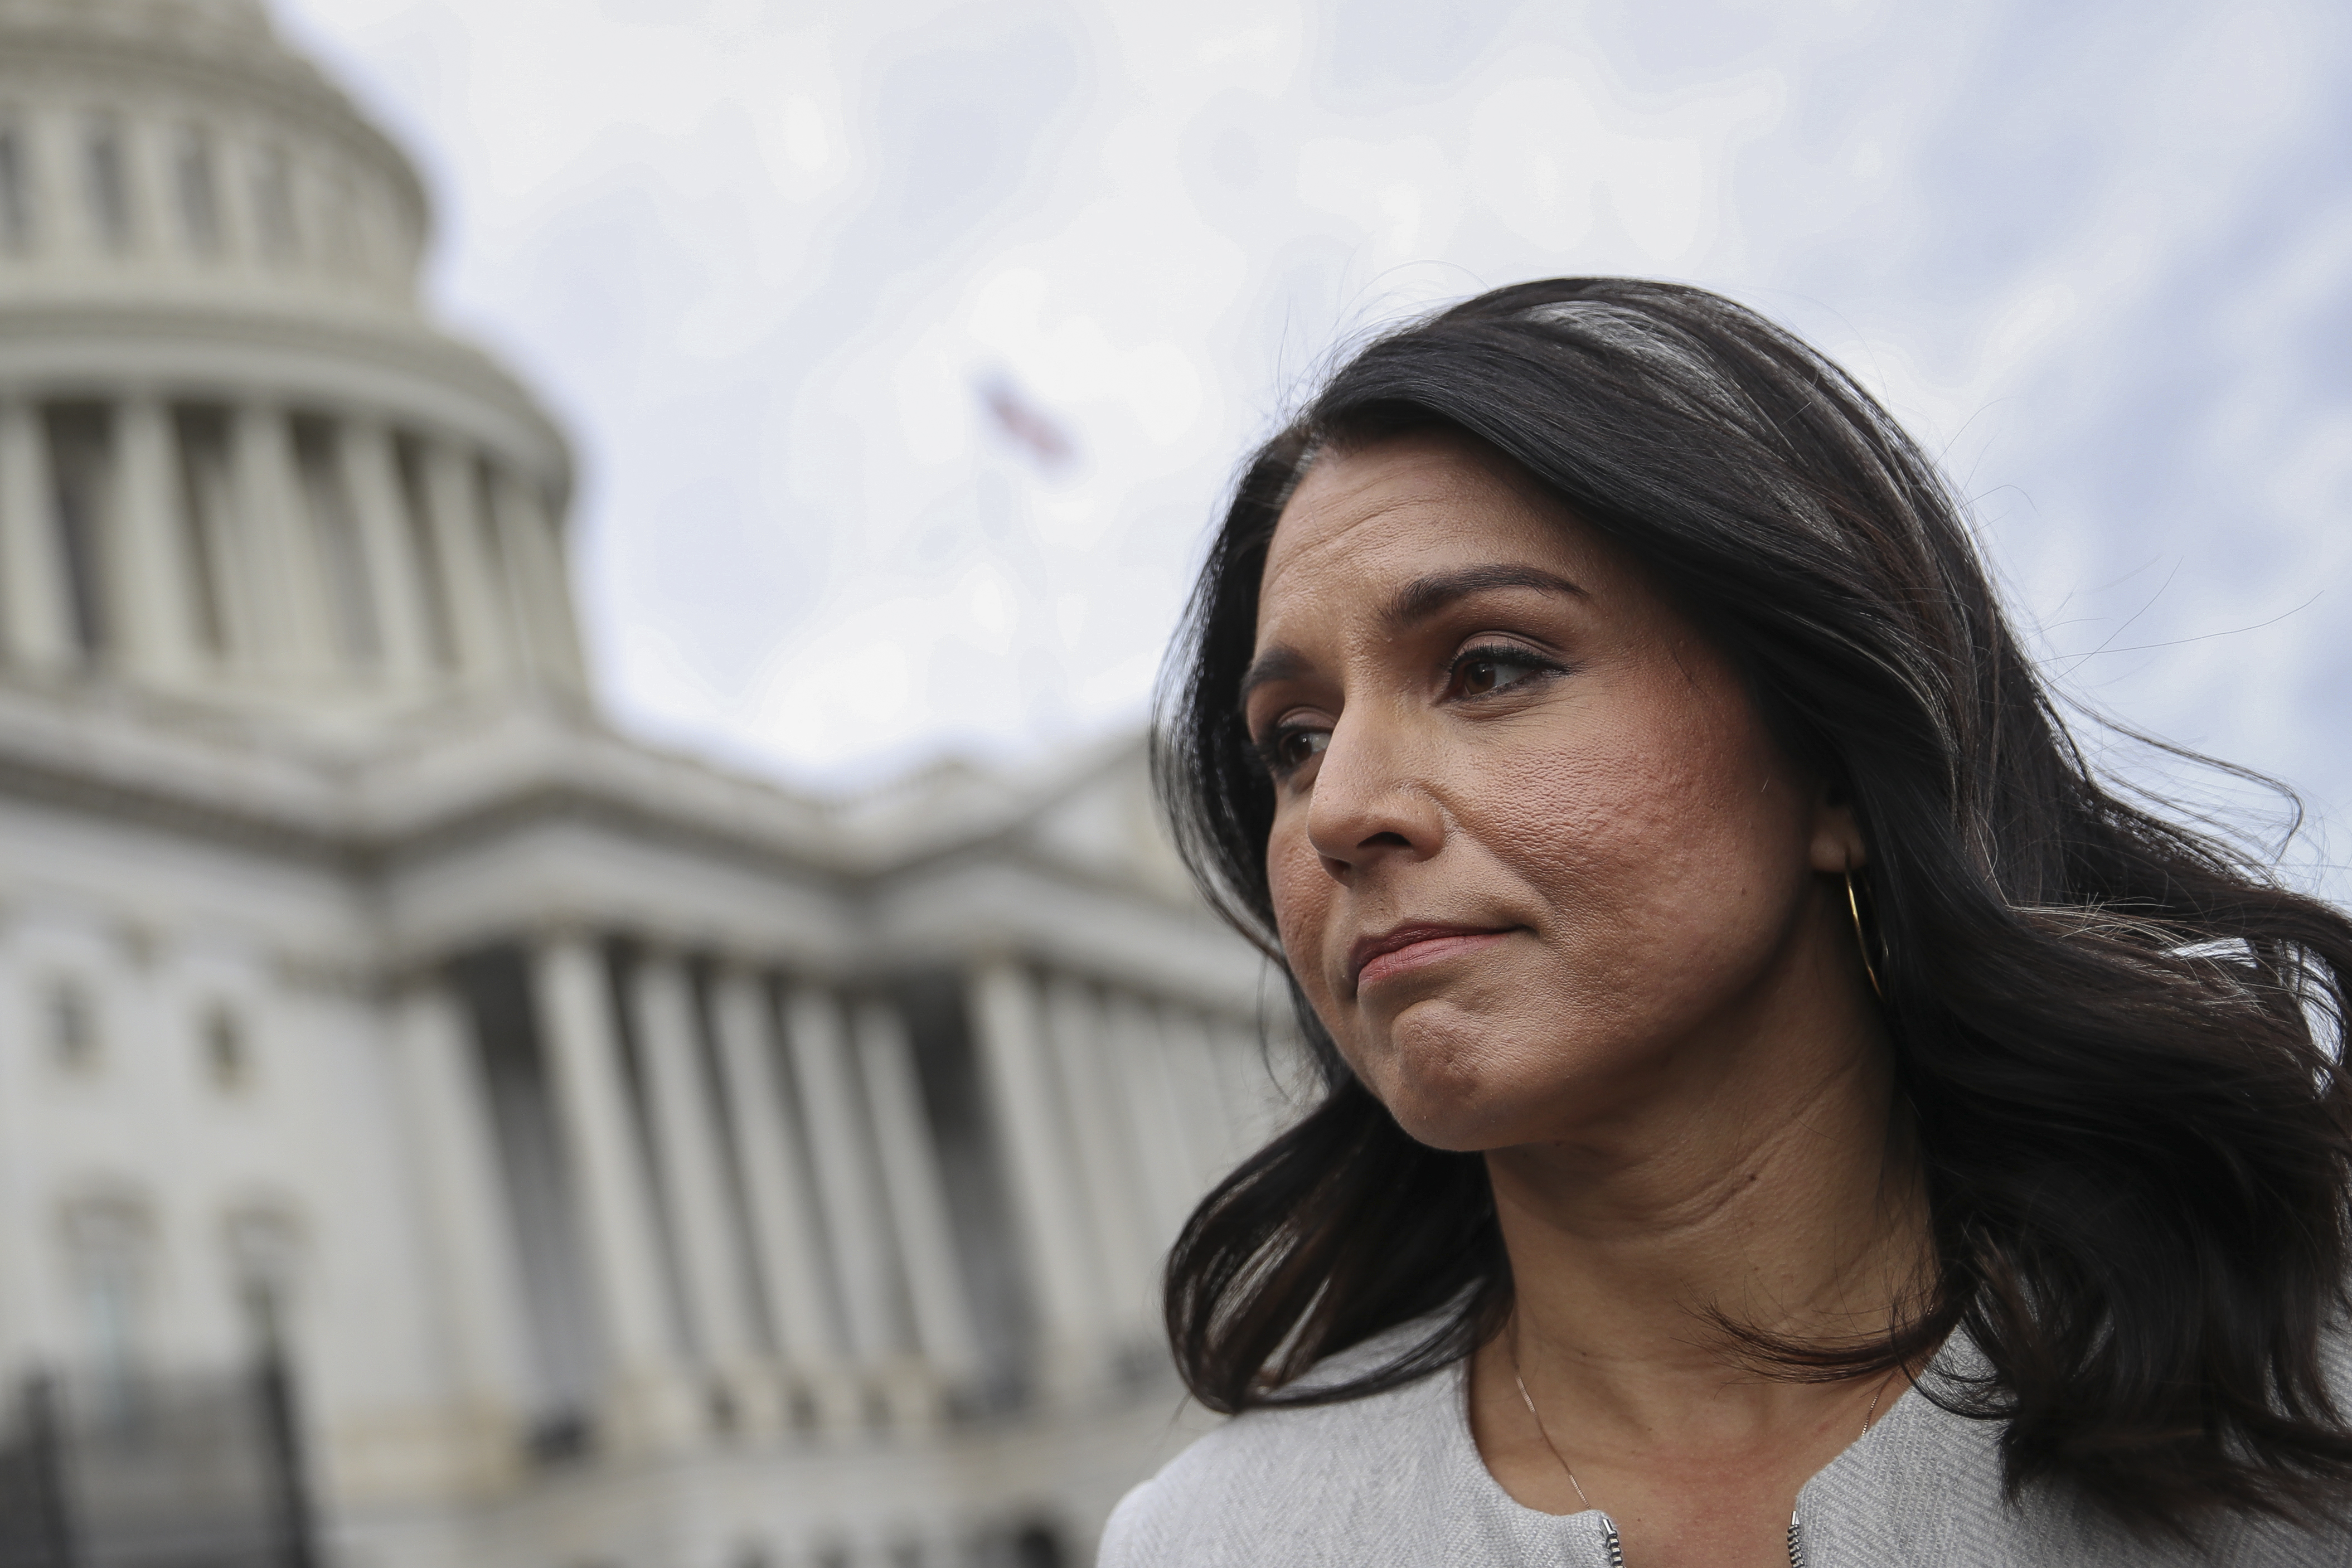 WASHINGTON, DC JANUARY 10: Democratic Presidential candidate Rep. Tulsi Gabbard (D-HI) speaks to reporters at U.S. Capitol after the last votes of the week on January 10, 2020 in Washington, DC. Speaker of the House Nancy Pelosi (D-CA) announced Friday that next week the House will consider a resolution to appoint impeachment managers and transmit the articles of impeachment to the Senate. (Photo by Drew Angerer/Getty Images)